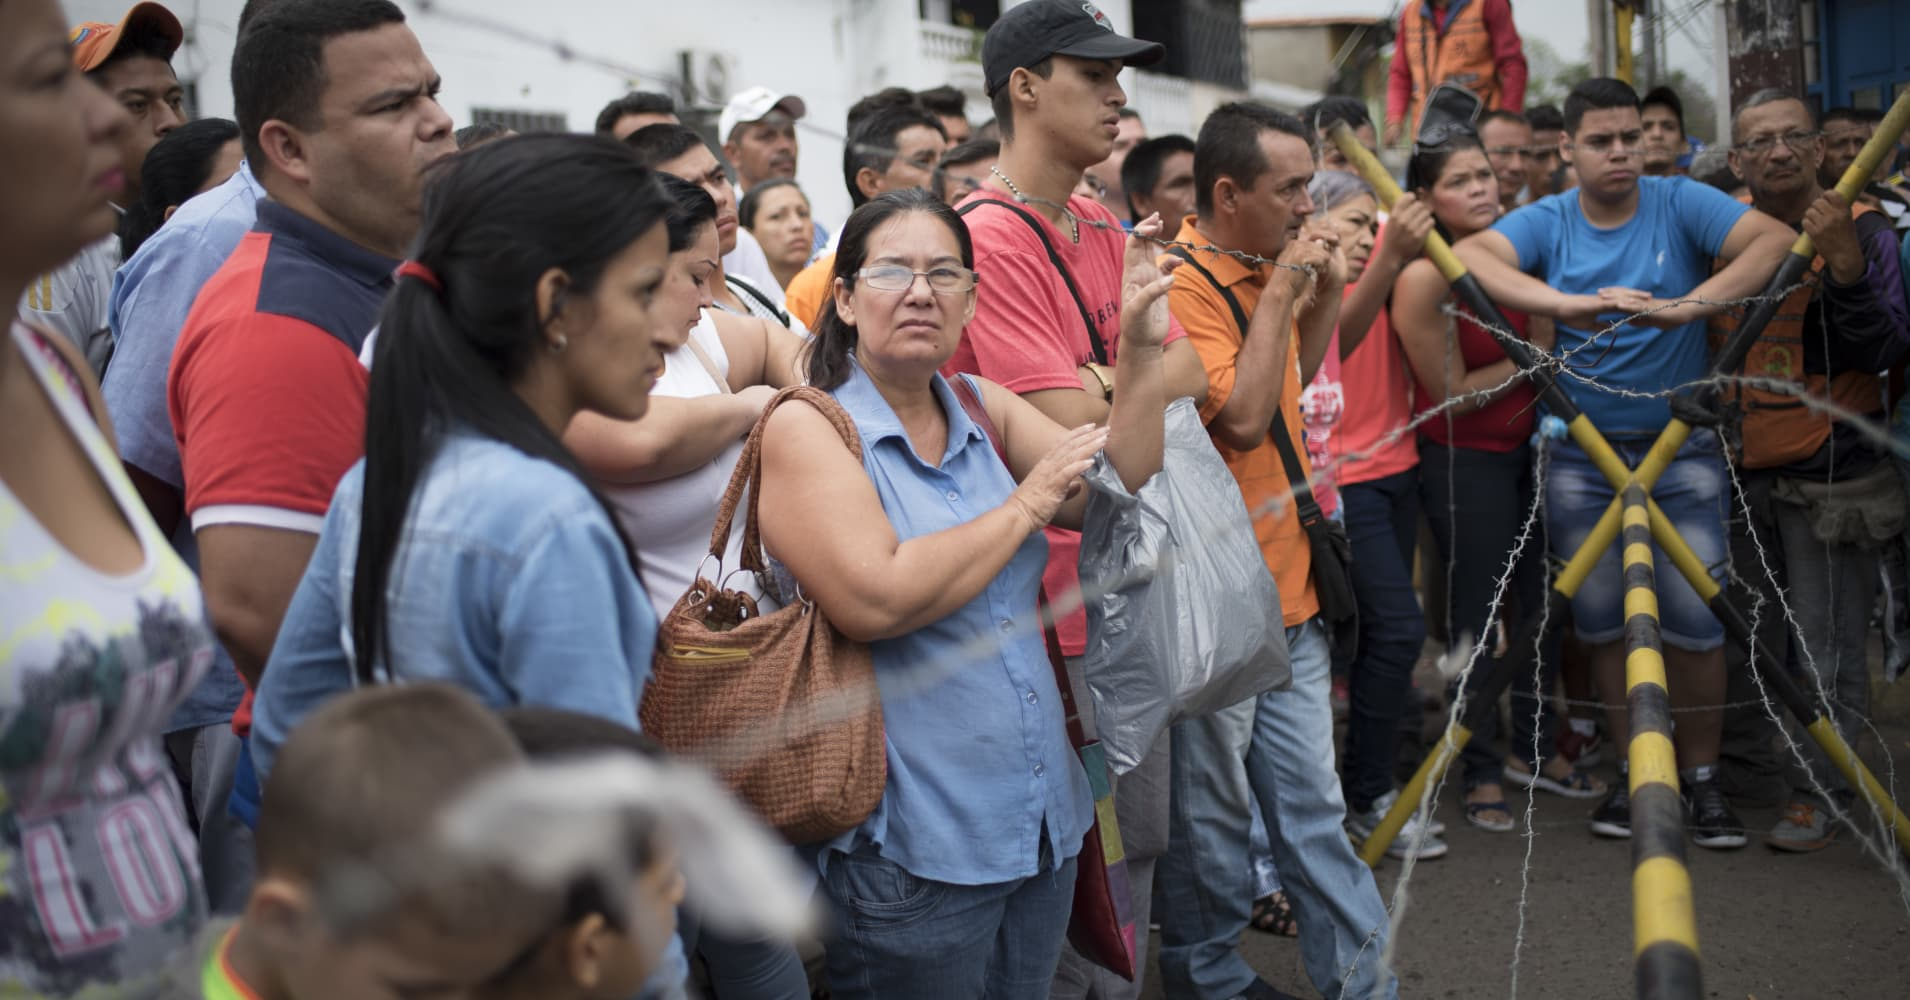 People wait to cross the border into Colombia at a checkpoint in Urena, Venezuela, on Sunday, Dec. 18, 2016.